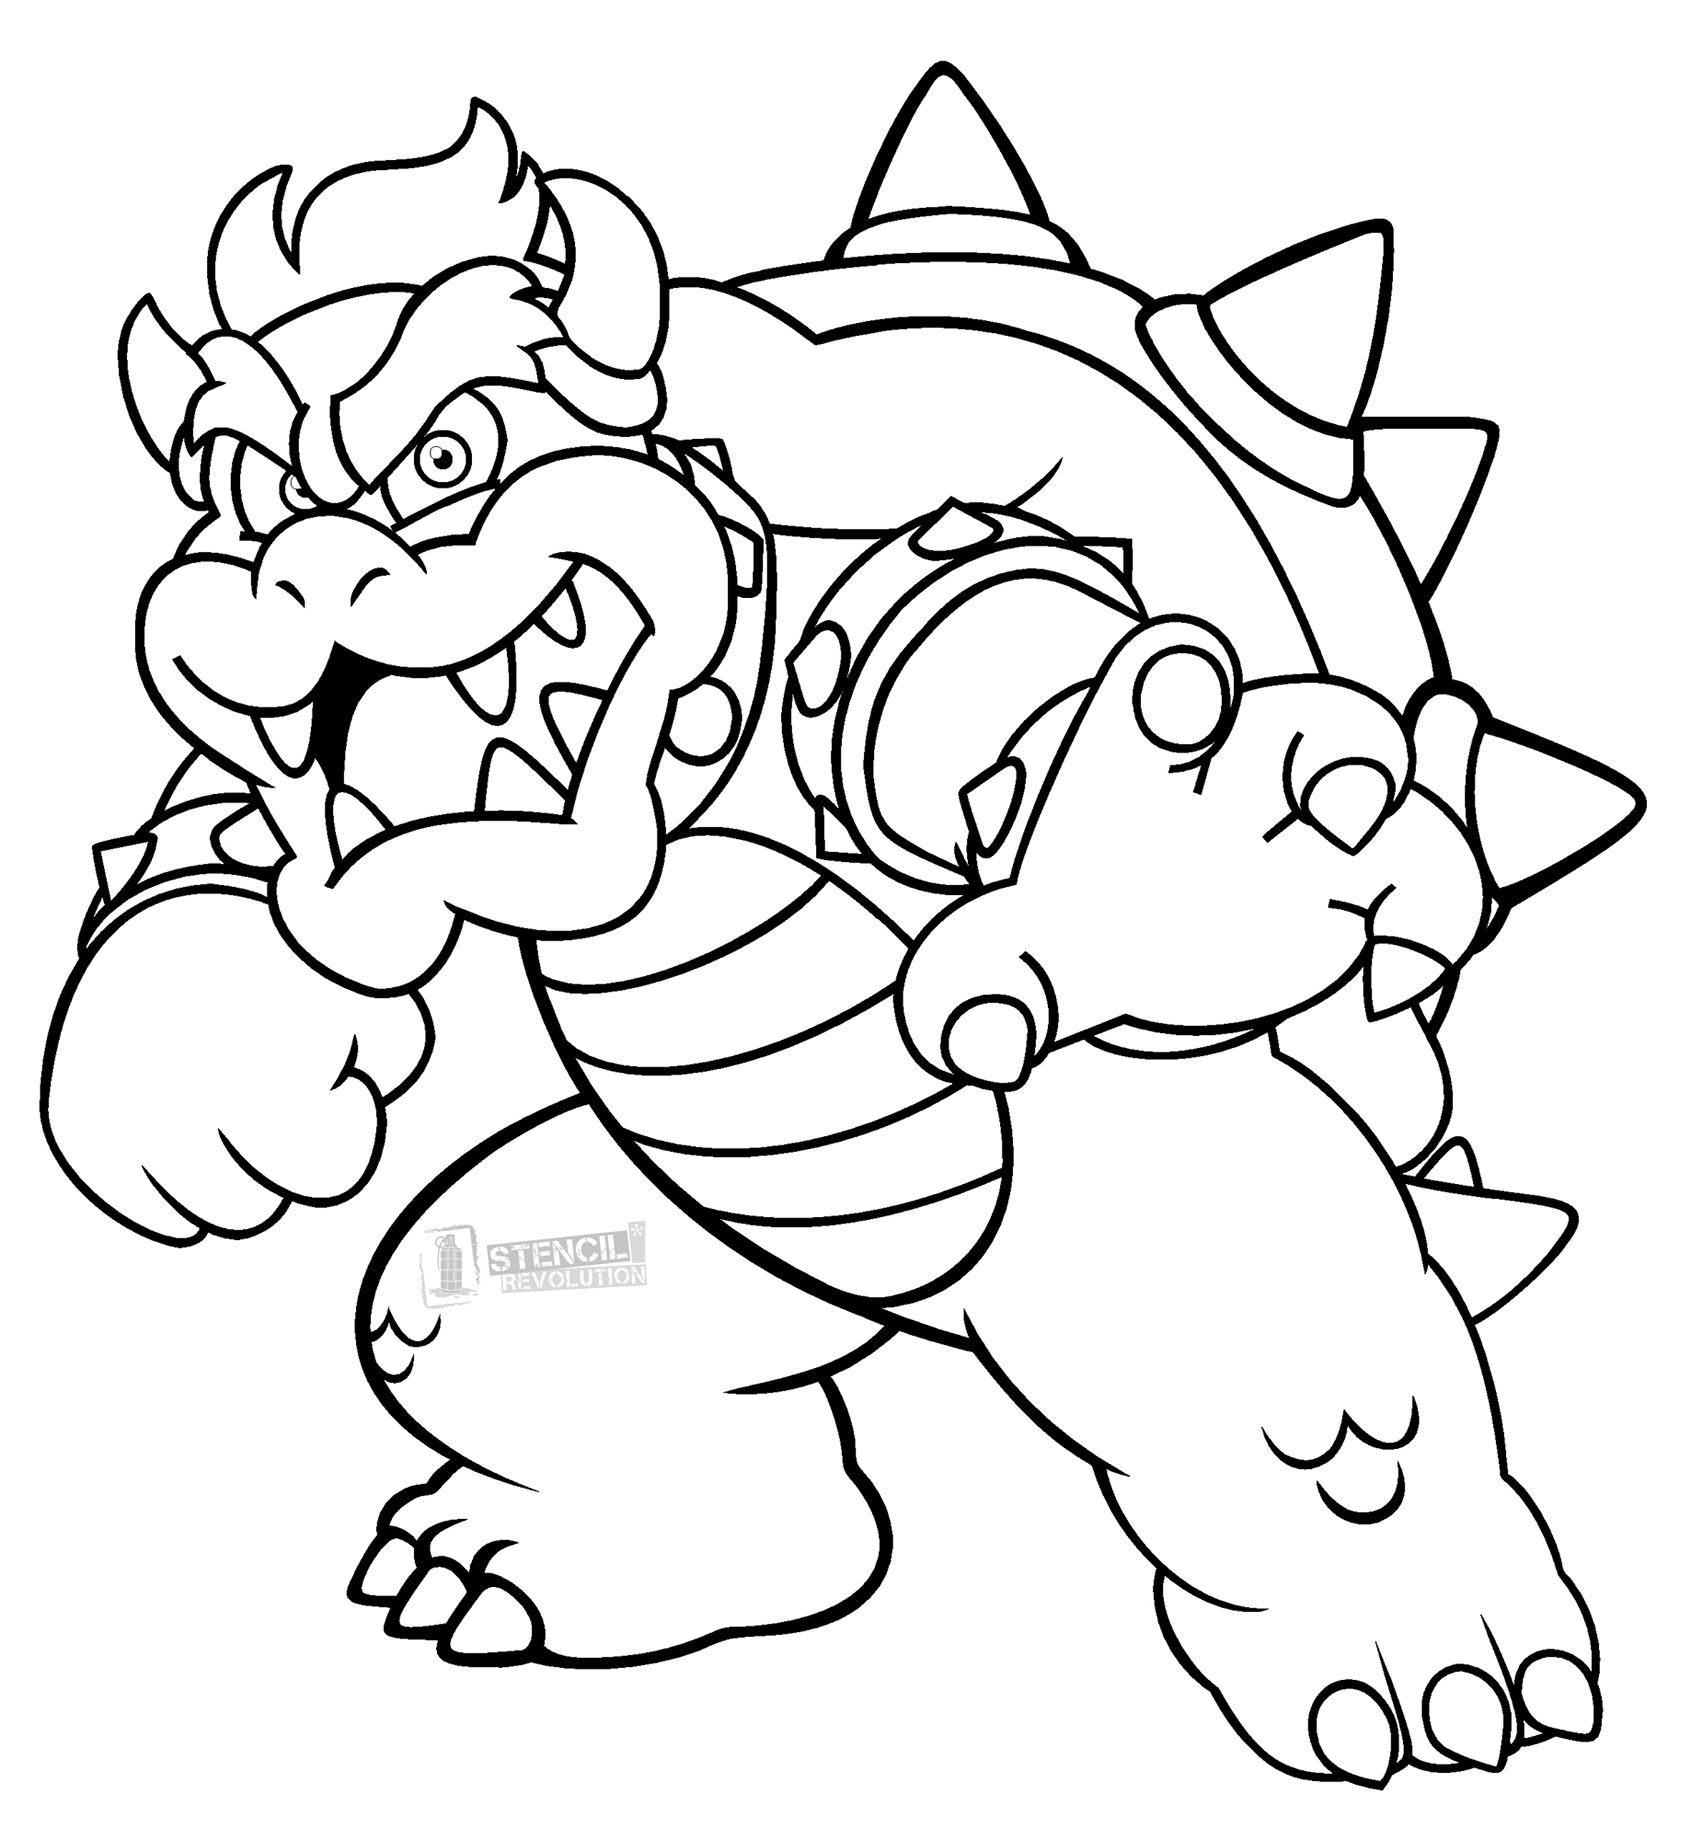 Bowser Stencils | Bowser, Stenciling and Printable stencils